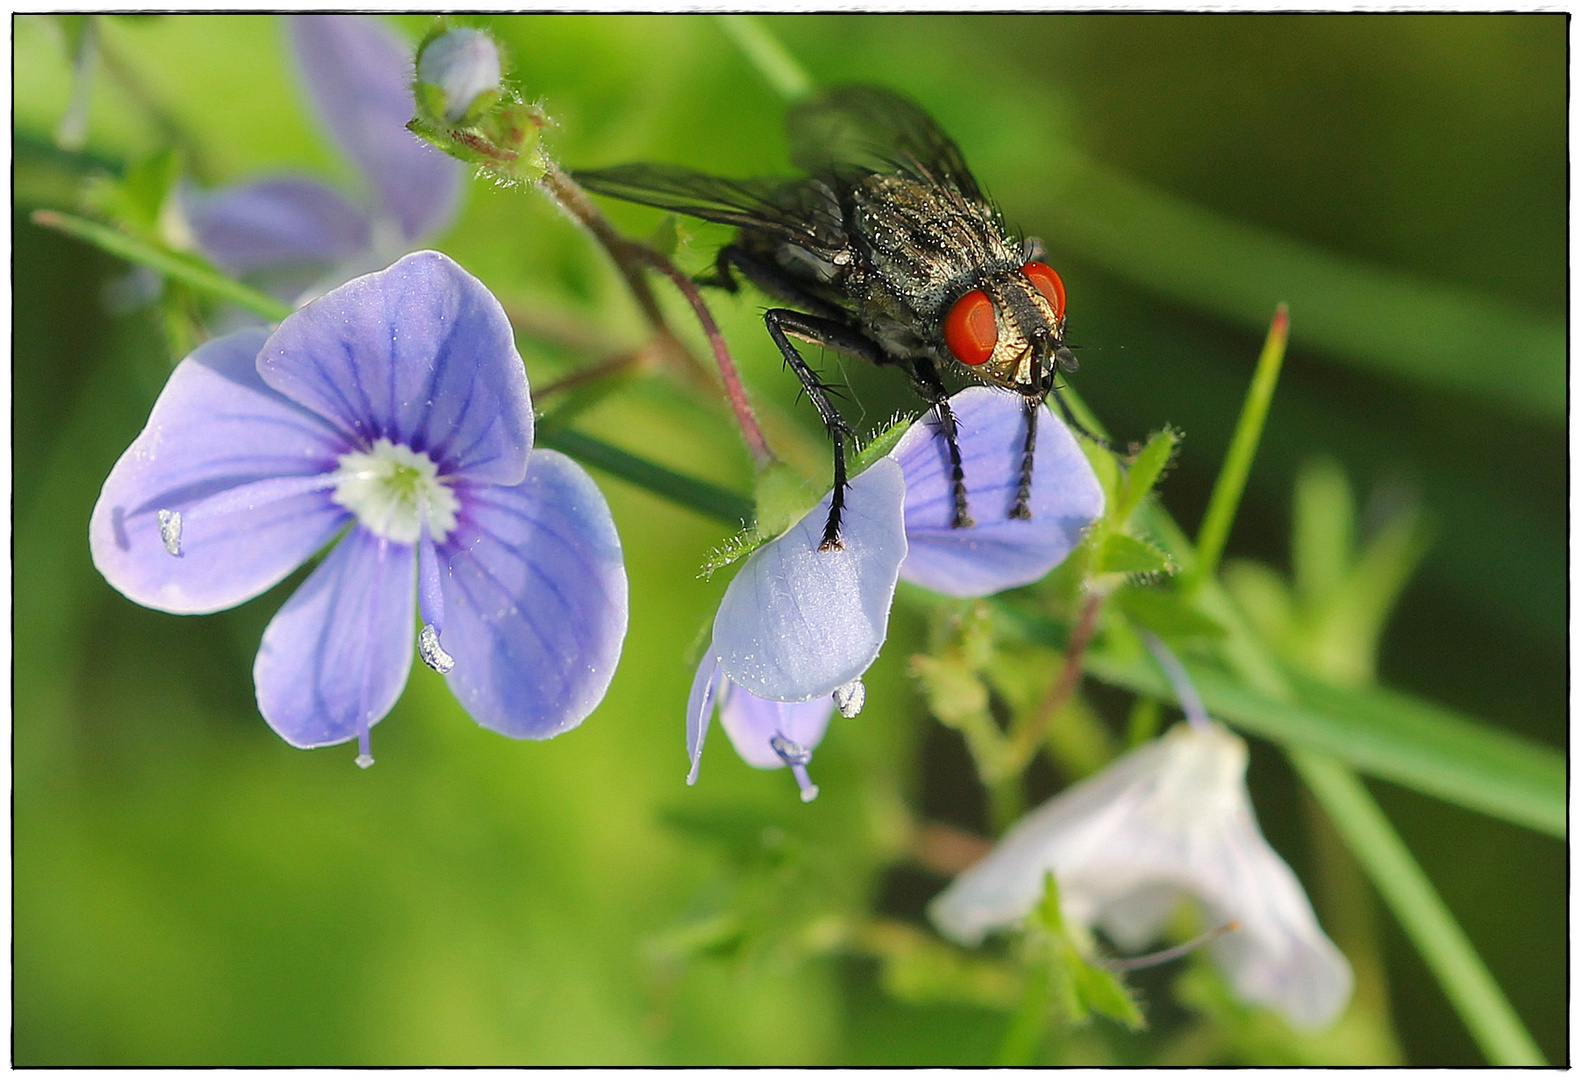 The Fly and the Flower